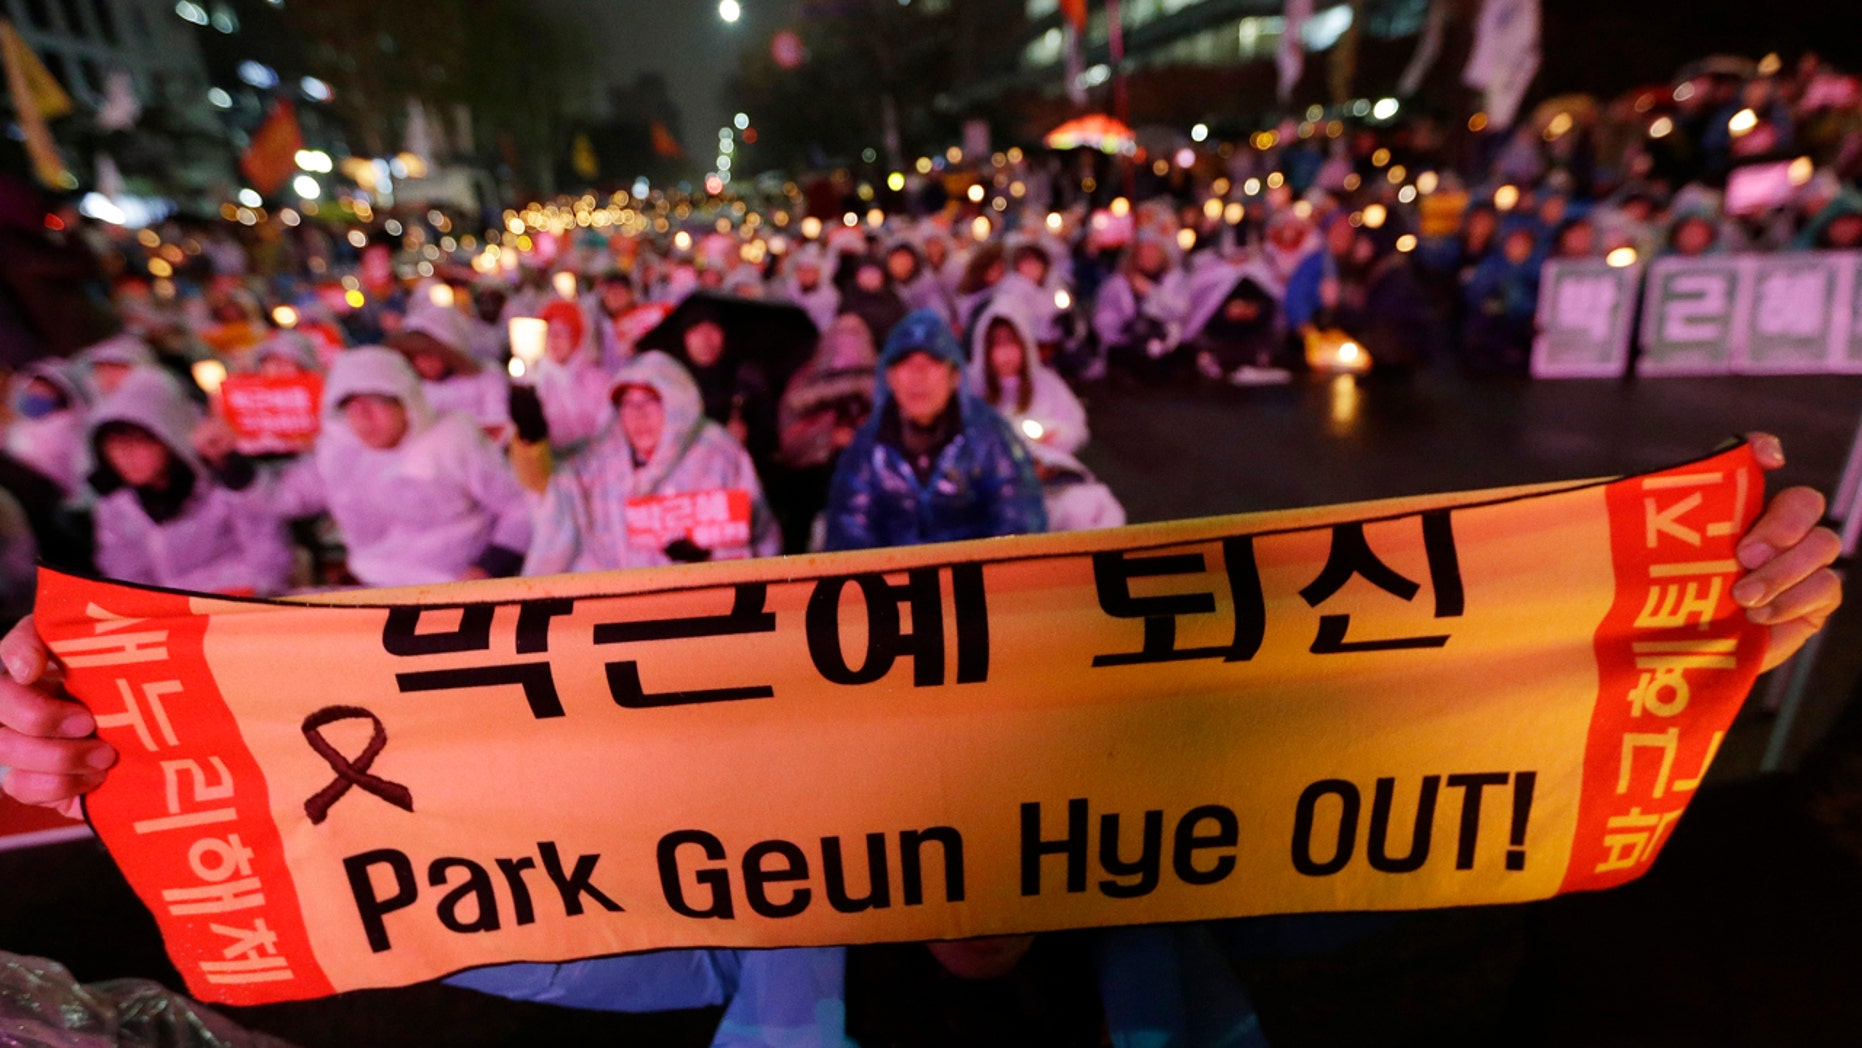 A protester holds up a banner during a rally demanding the impeachment of South Korean President Park Geun-hye near the National Assembly in Seoul, South Korea, Thursday, Dec. 8, 2016.